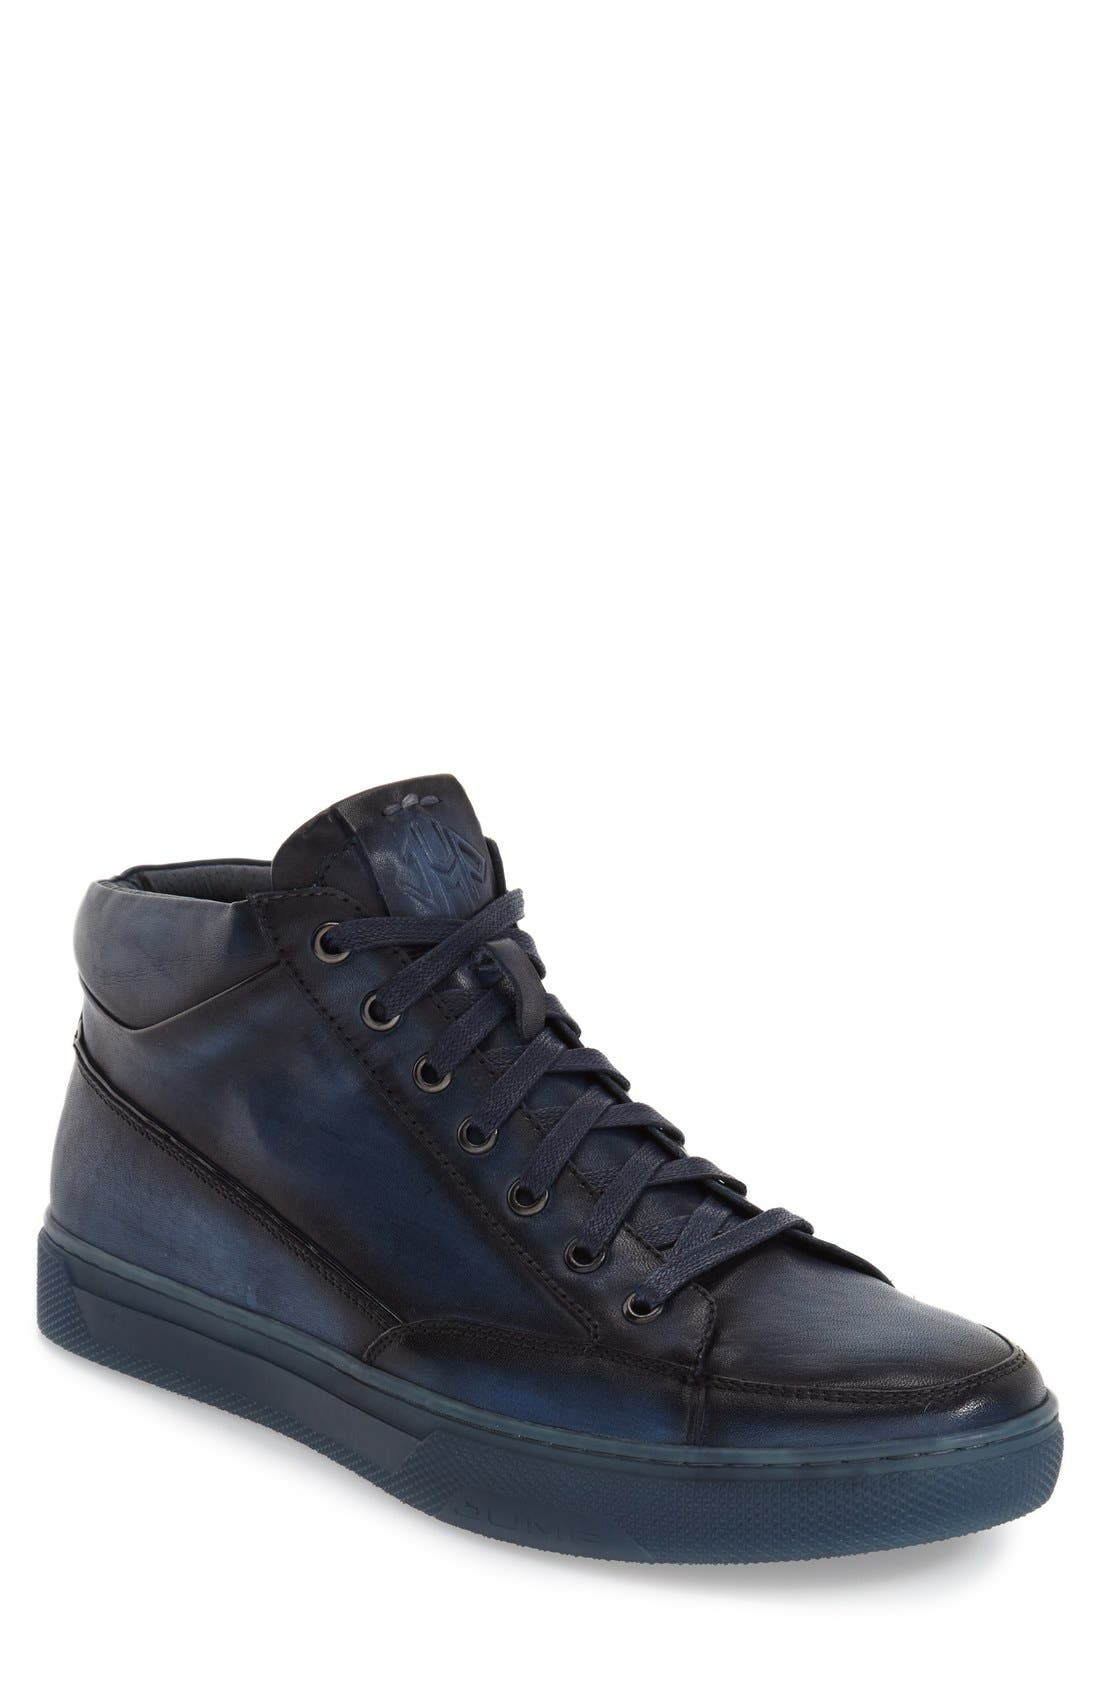 'Strickland' Sneaker,                             Main thumbnail 1, color,                             Navy Leather